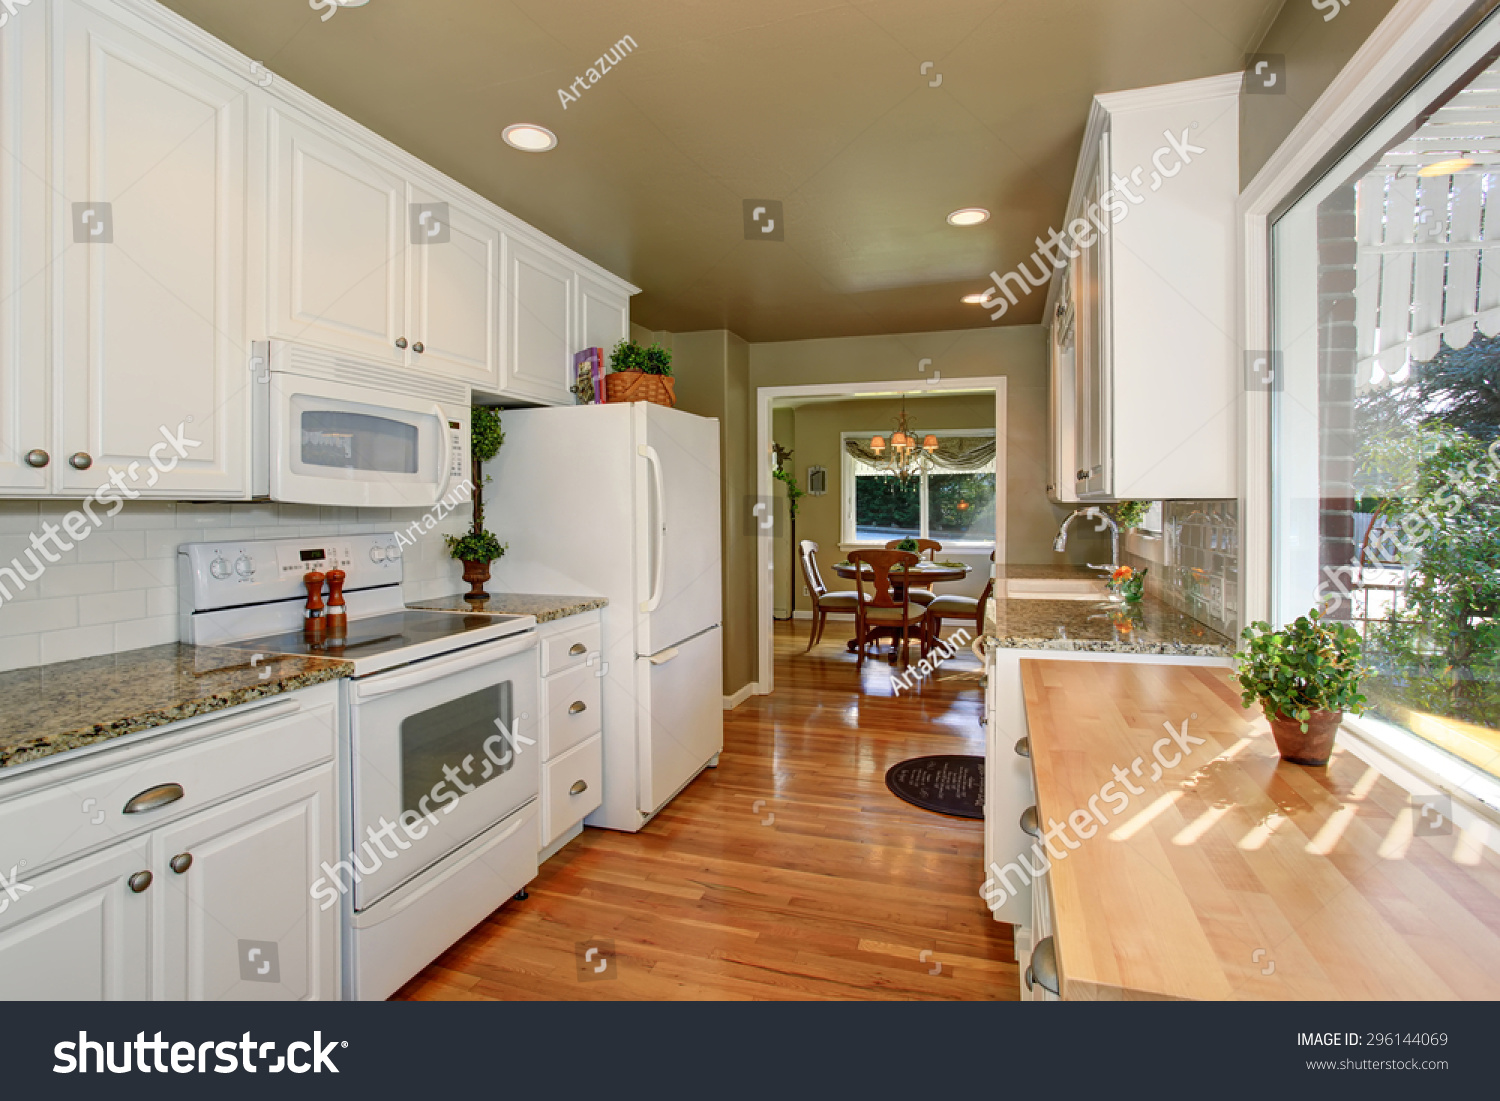 State Of The Art Kitchen With Green Walls And White Accents.